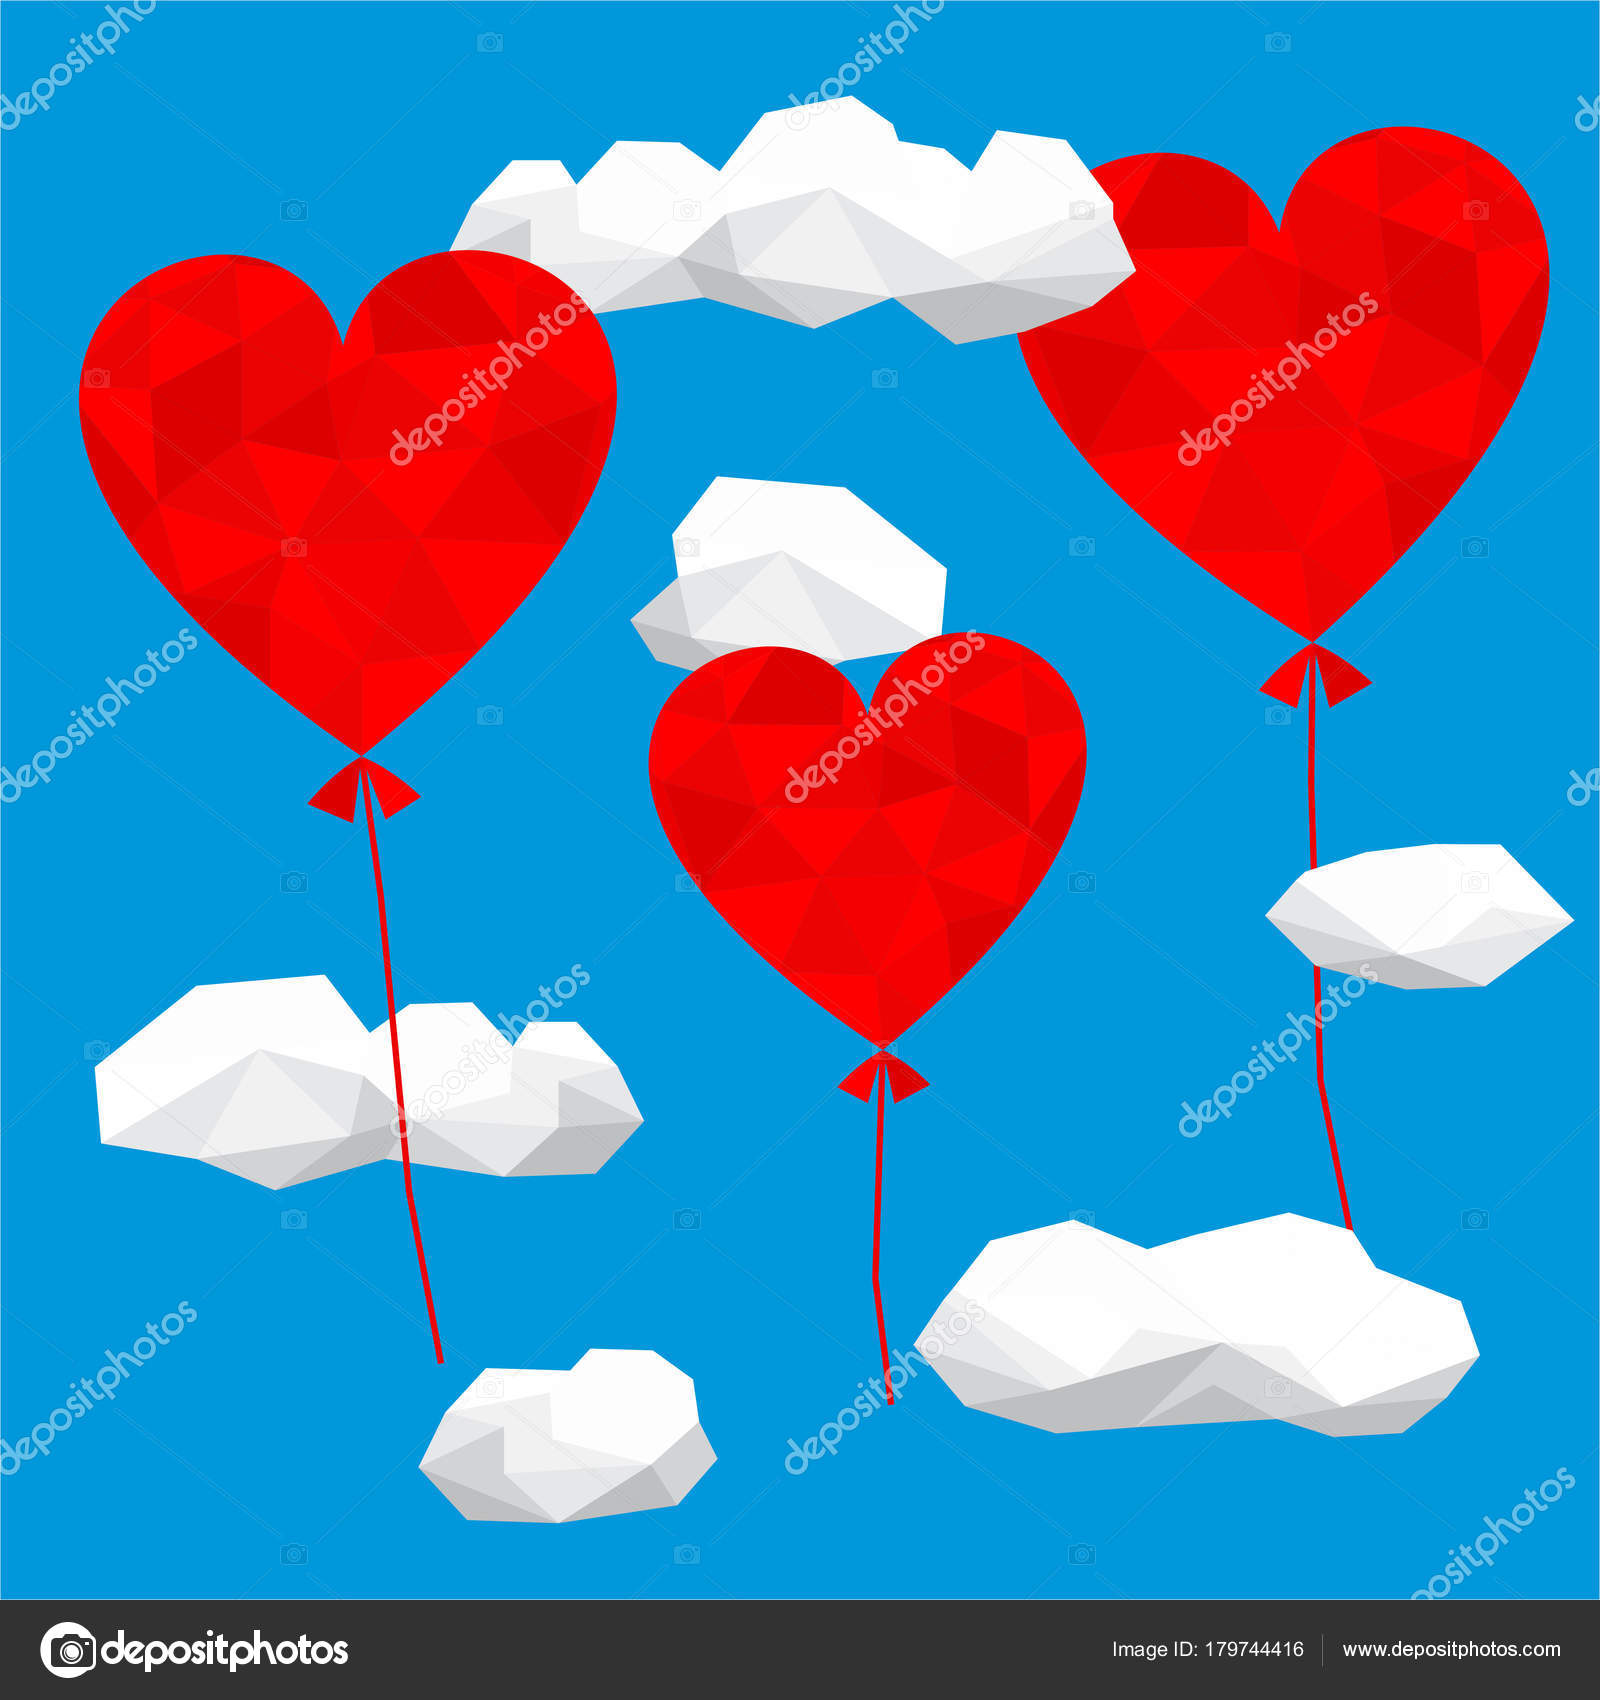 valentine day card design template low poly hearts shaped balloons